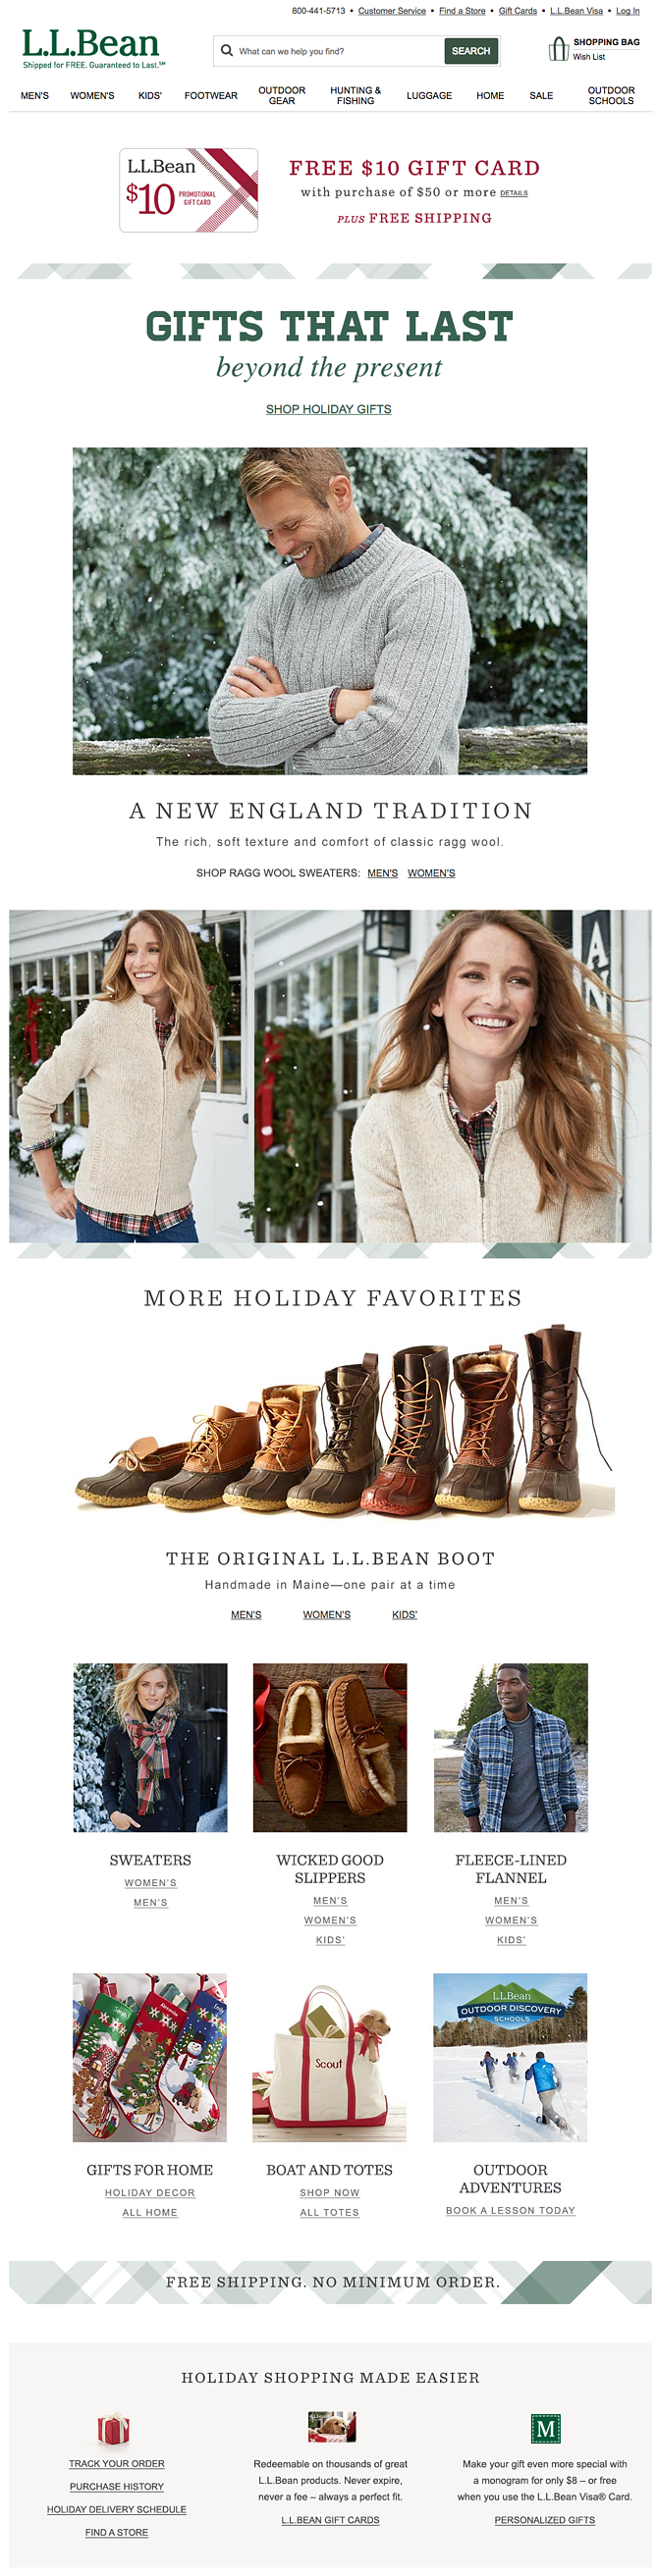 llbean holiday homepage